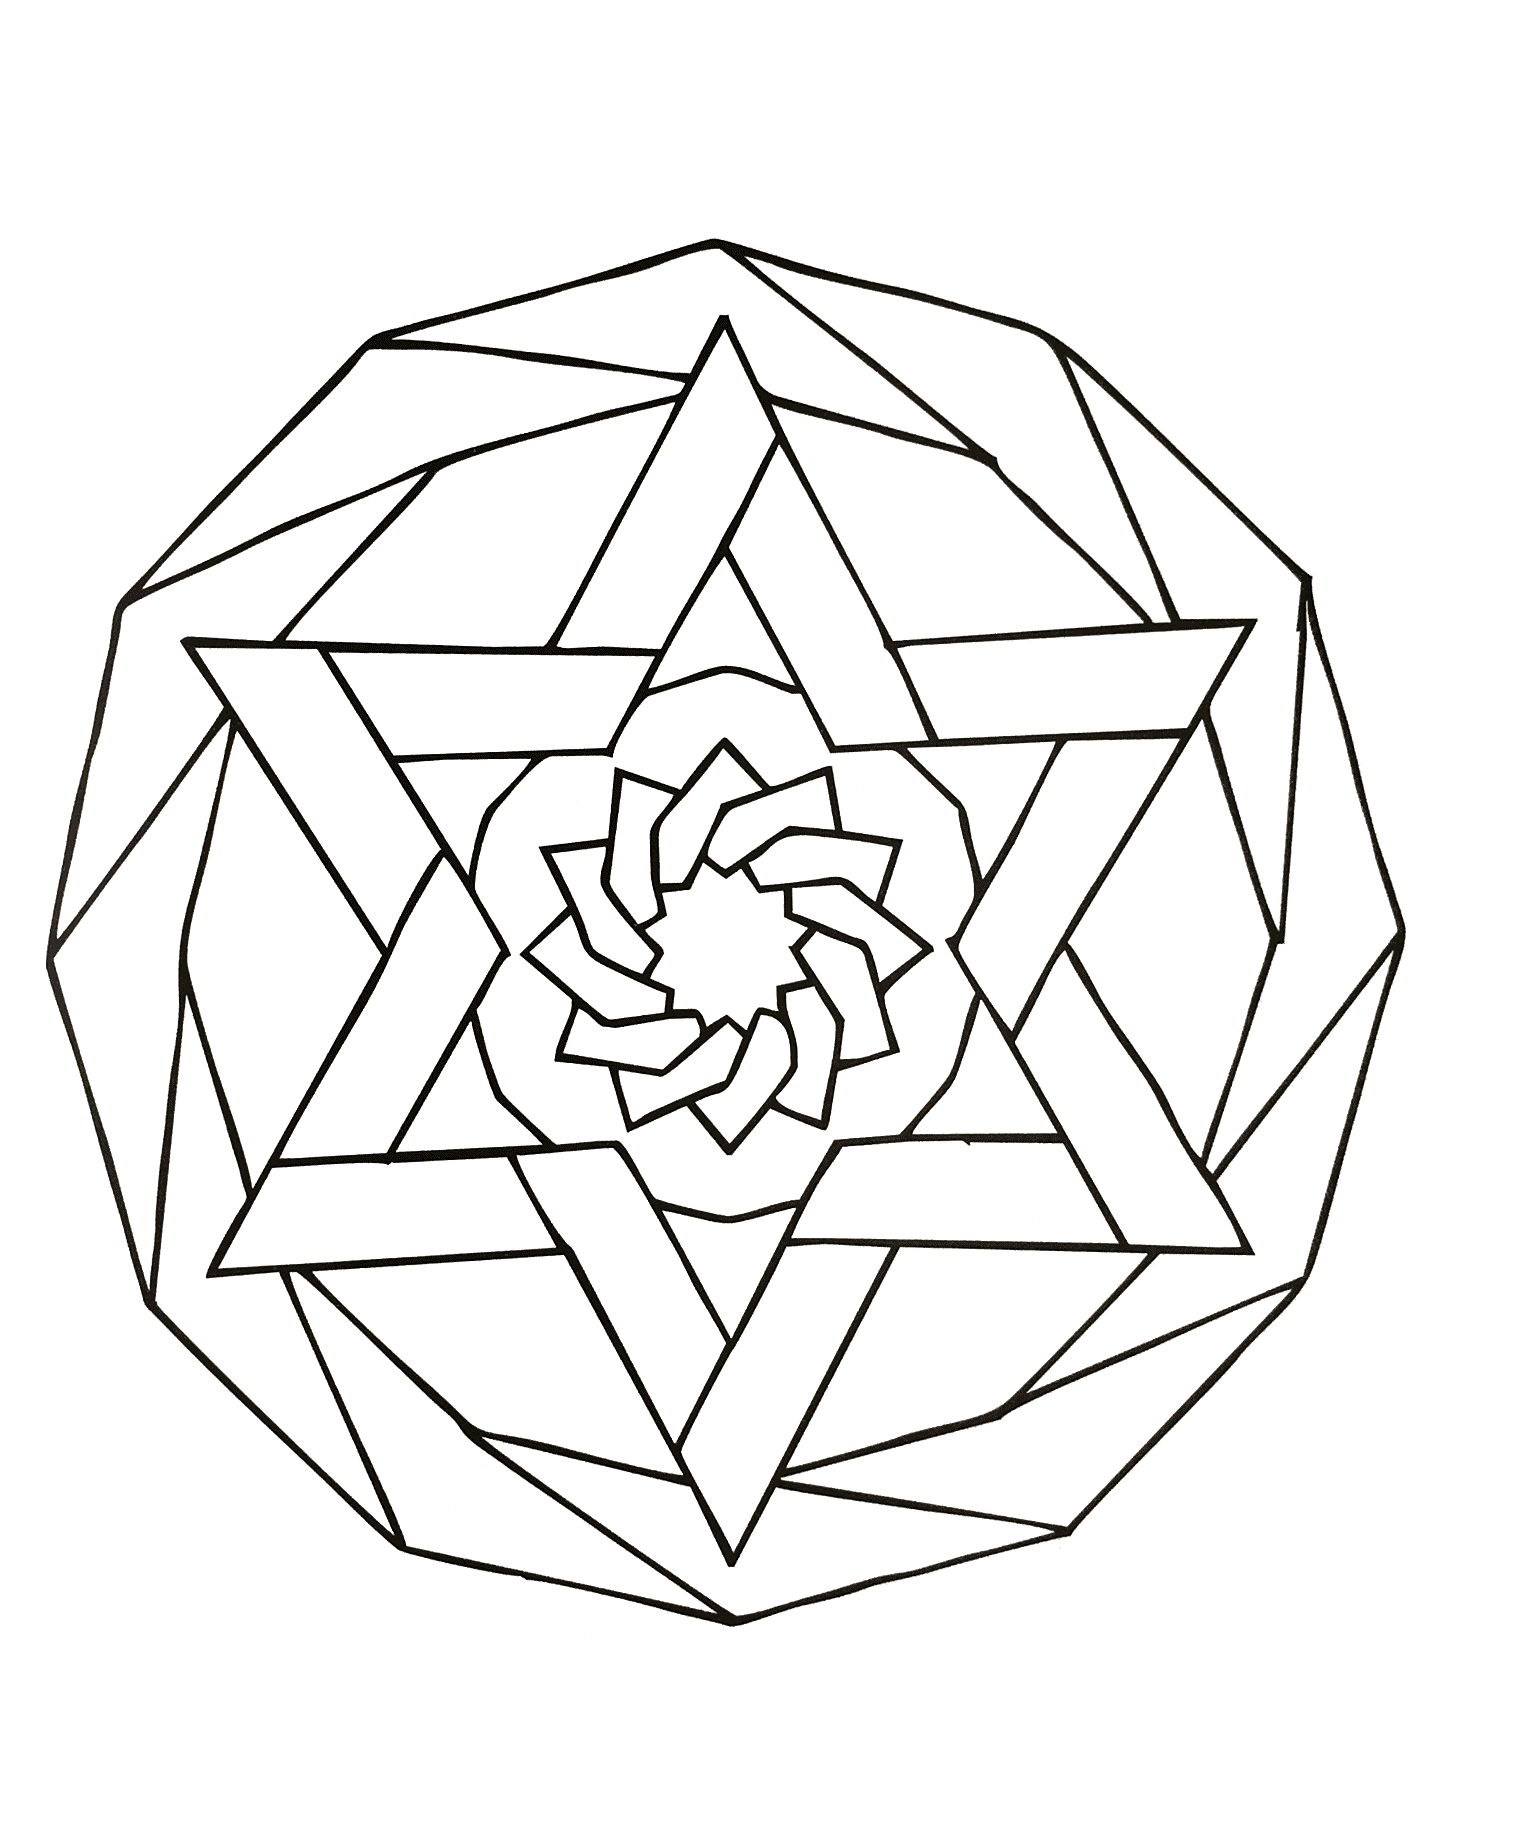 Simple mandala 88 - Mandalas Coloring pages for kids to ...